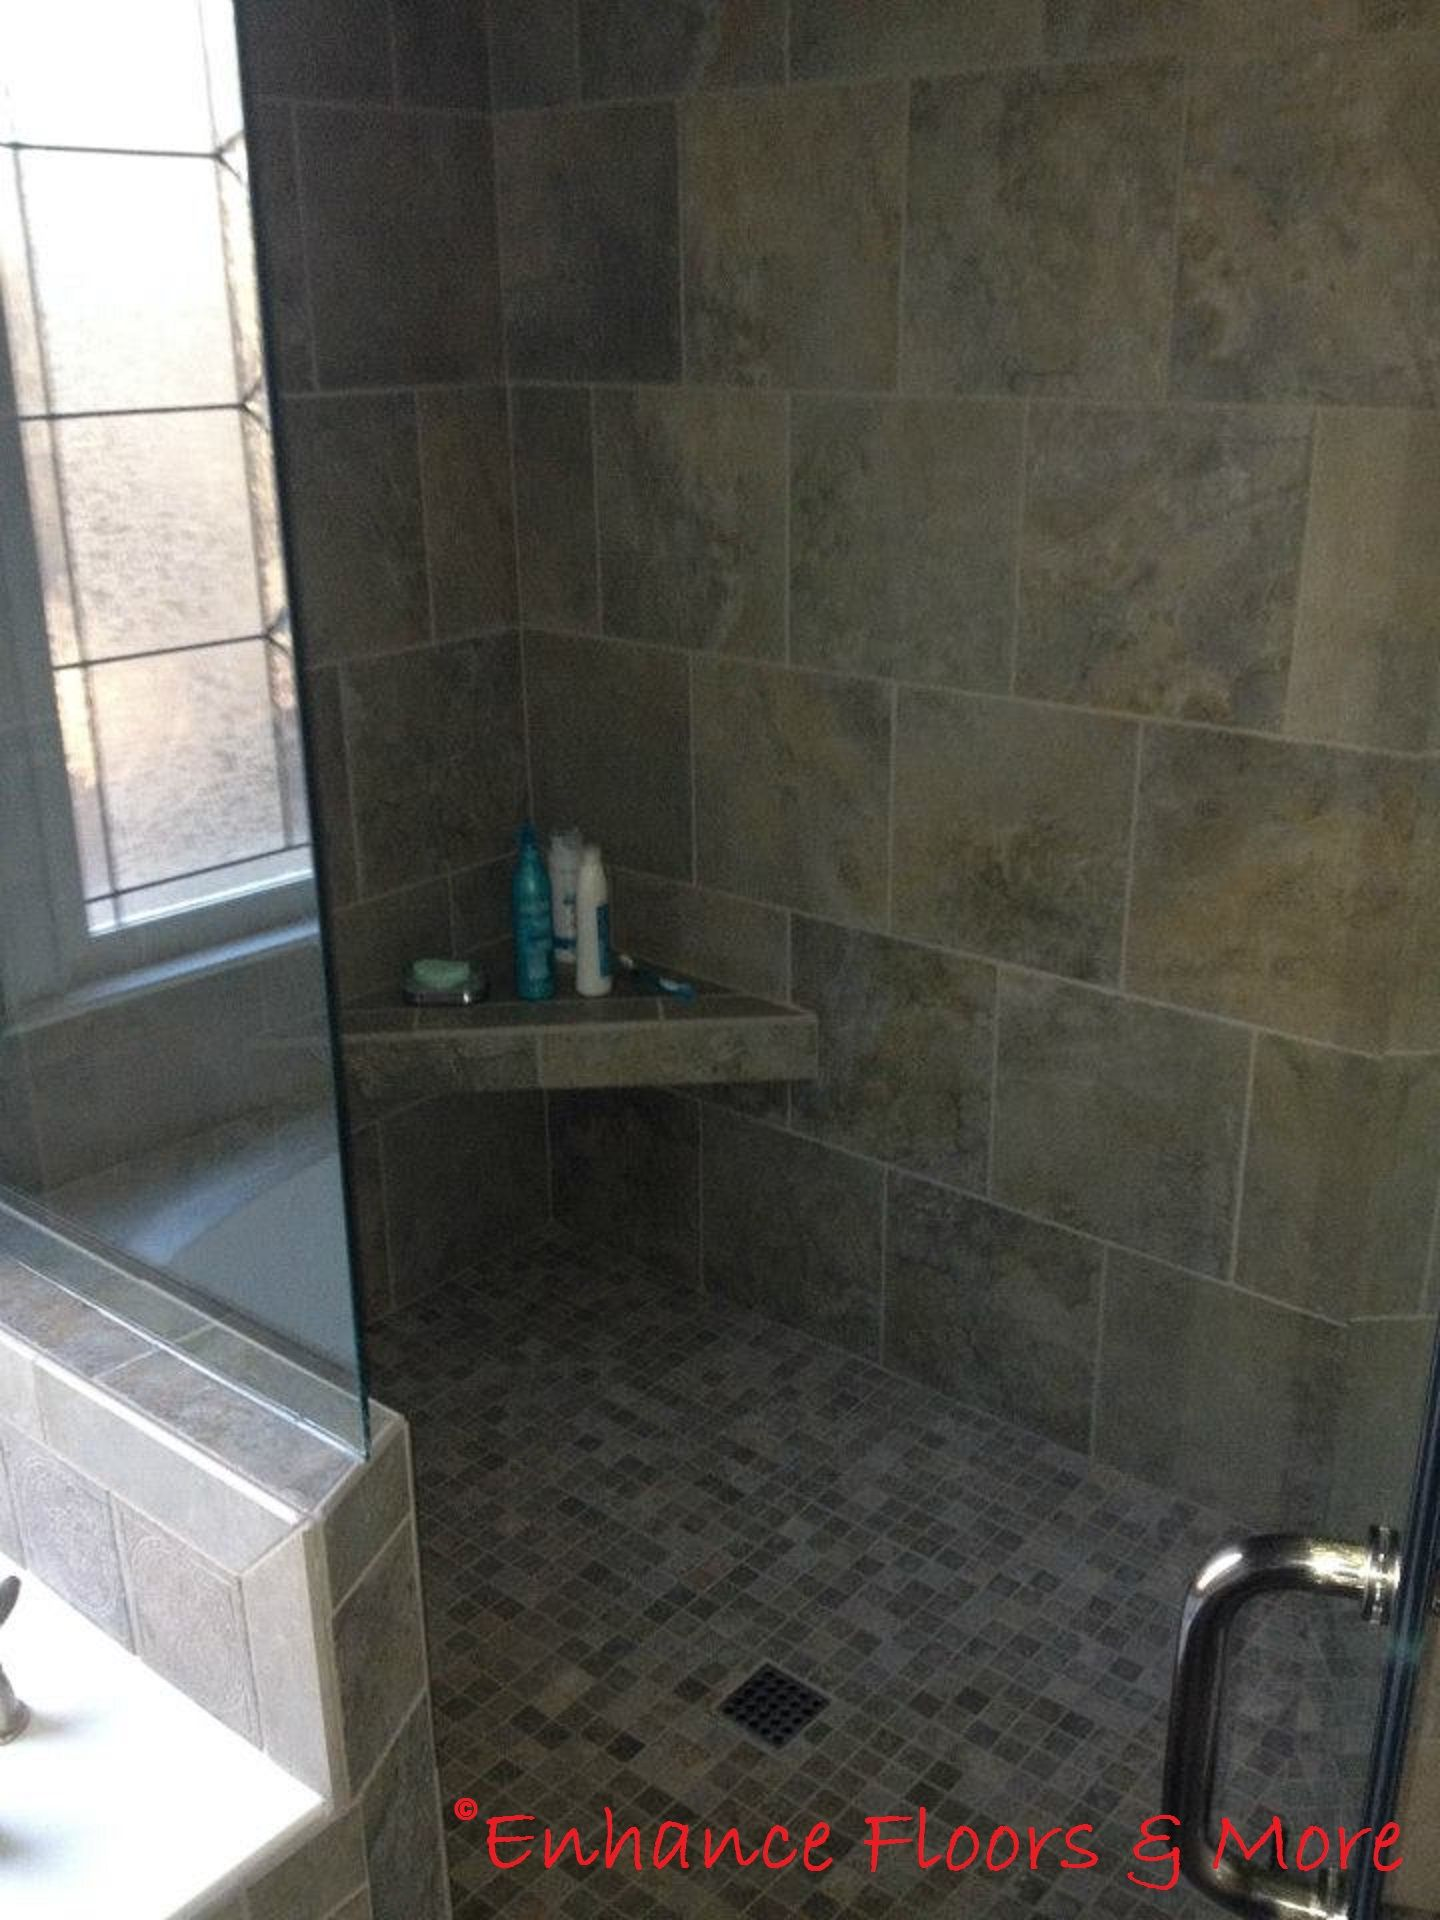 A Functional Shower Bench It Can Hold Up To 400 Lbs Shower Bench Shower Sink